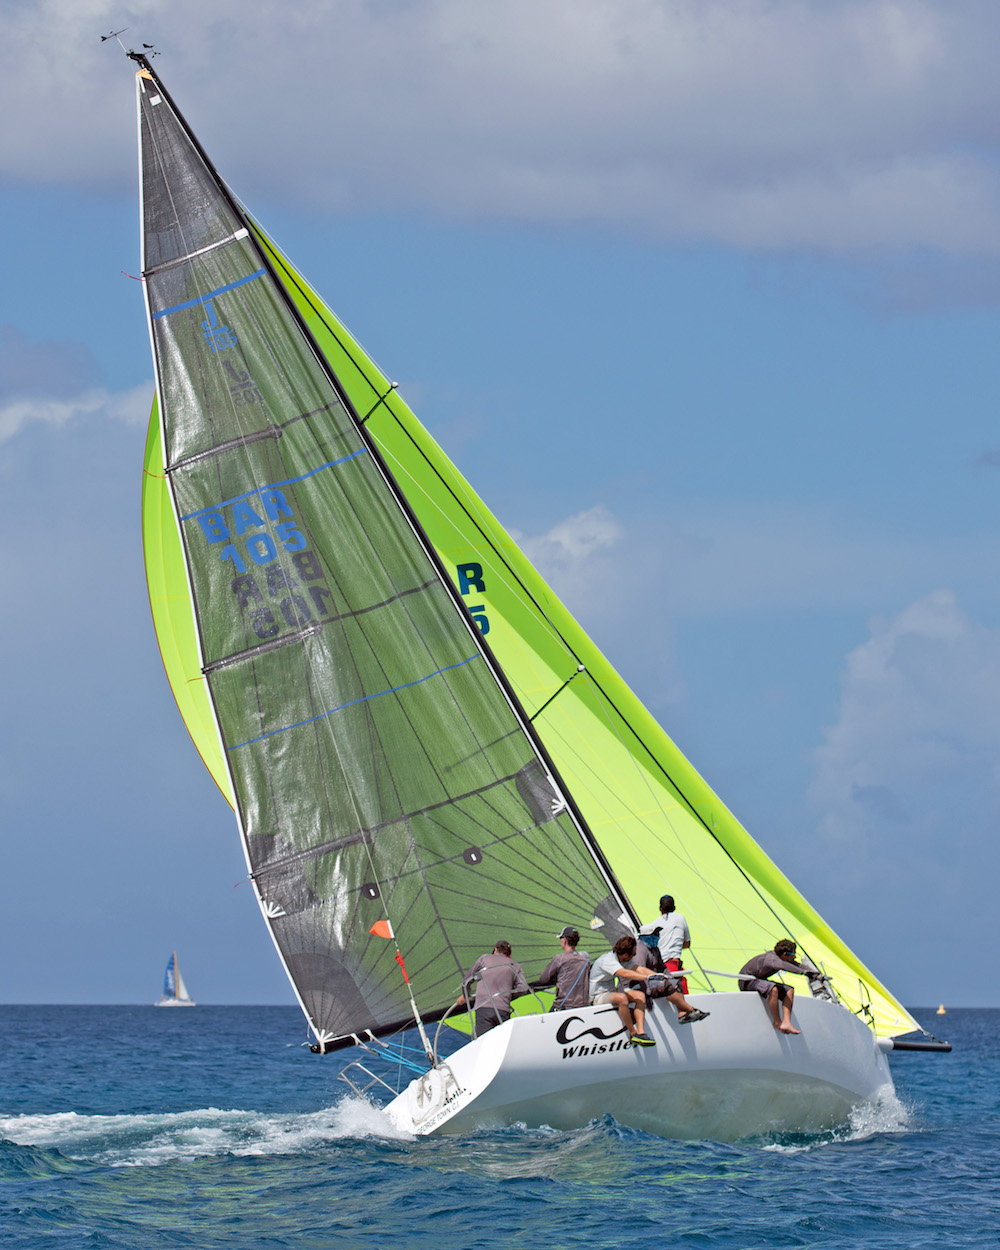 Team Whistler (J/105) battle to keep the spinnaker flying on the tight reach. Photo Peter Marshall/BSW.